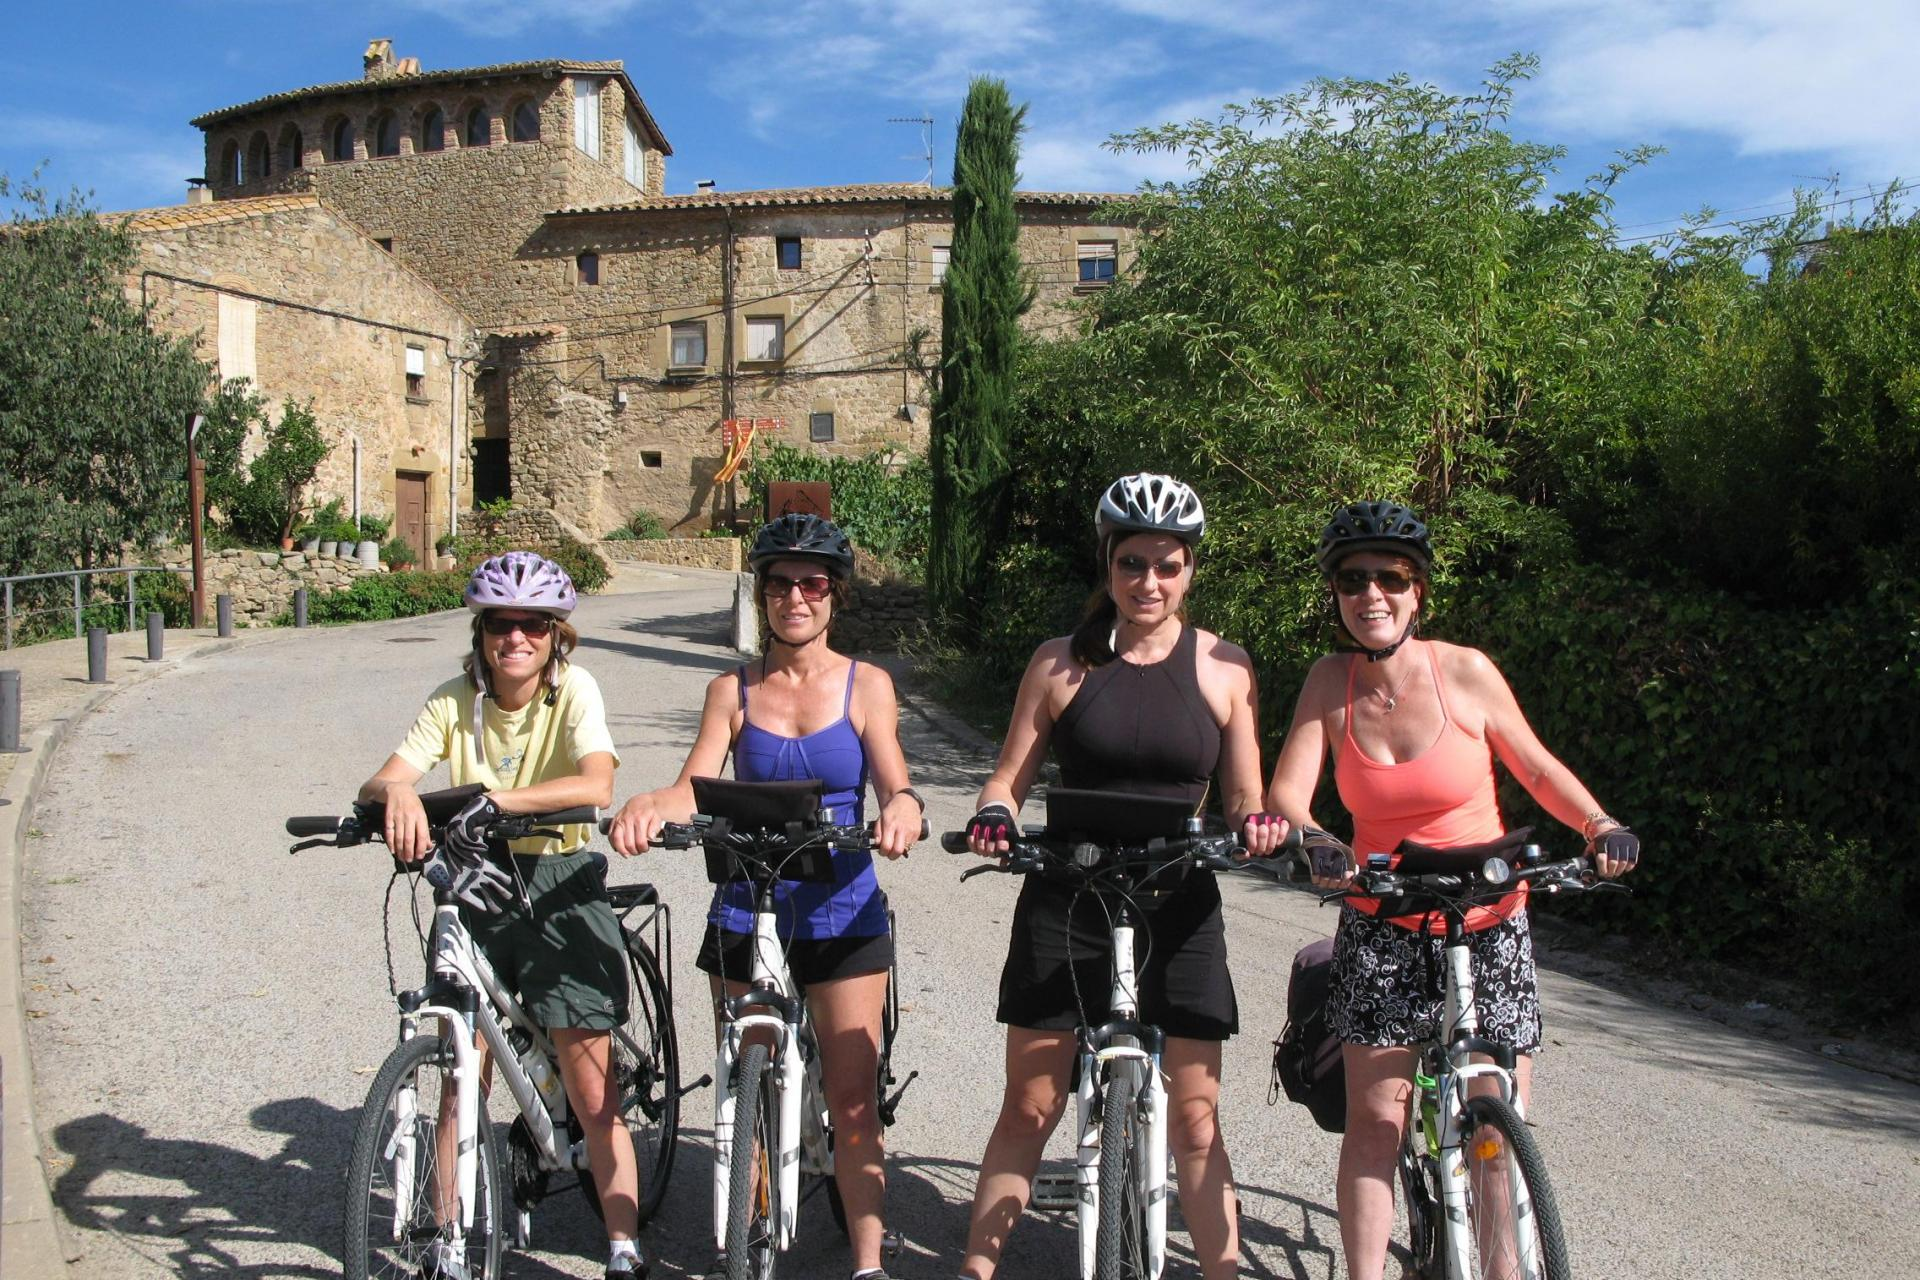 A group of cyclists on a tour stand in the foreground with medieval Spanish architecture in the background